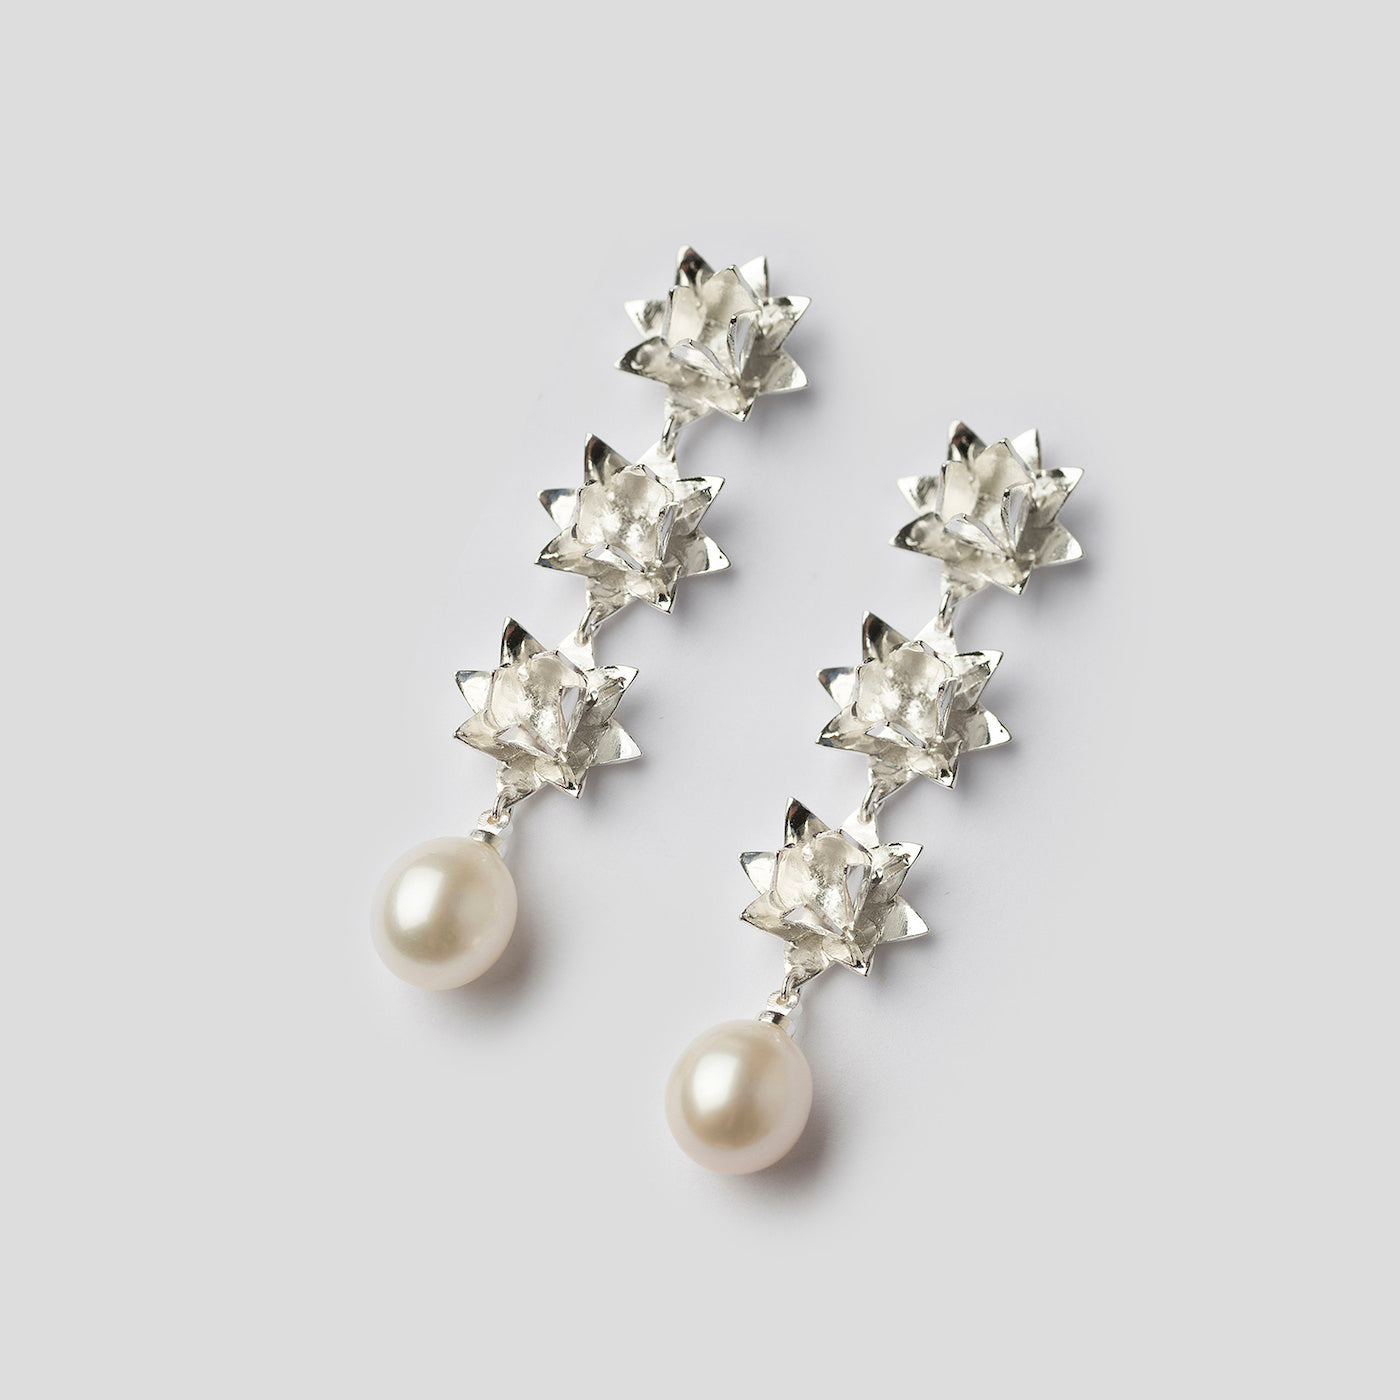 silver triple lotus pearl earrings on angle on white background